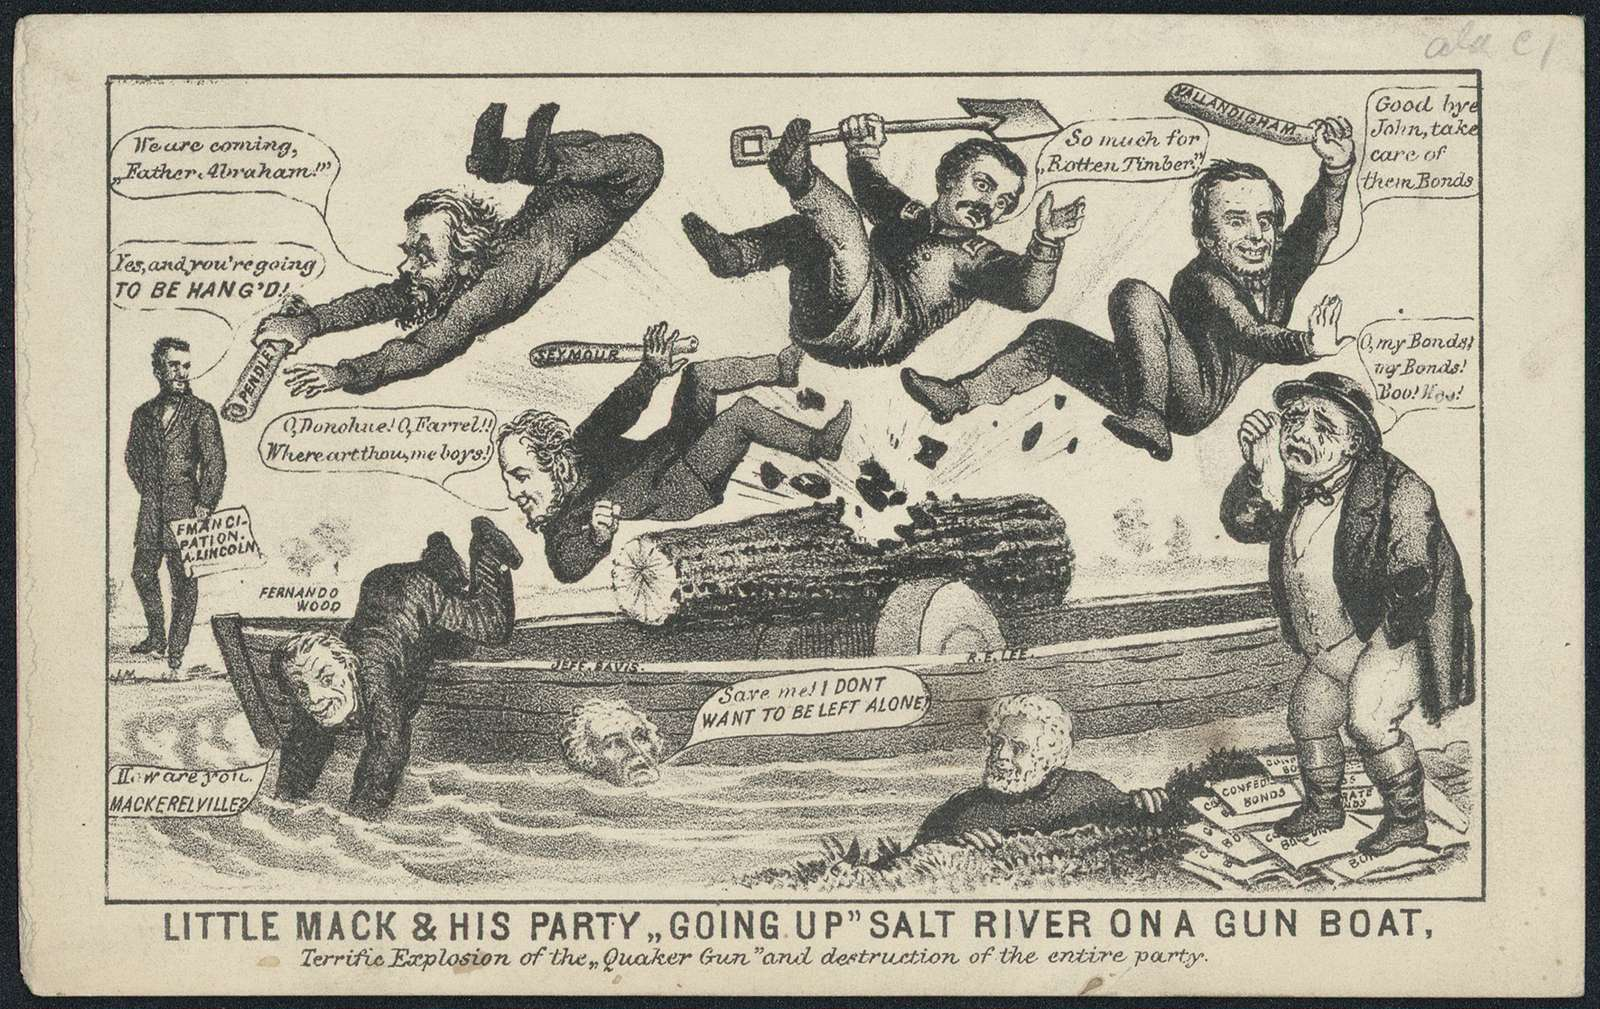 """Little Mack and his party """"going up"""" Salt River on a gunboat. Terrific explosion of the """"Quaker gun"""" and destruction of the entire party."""